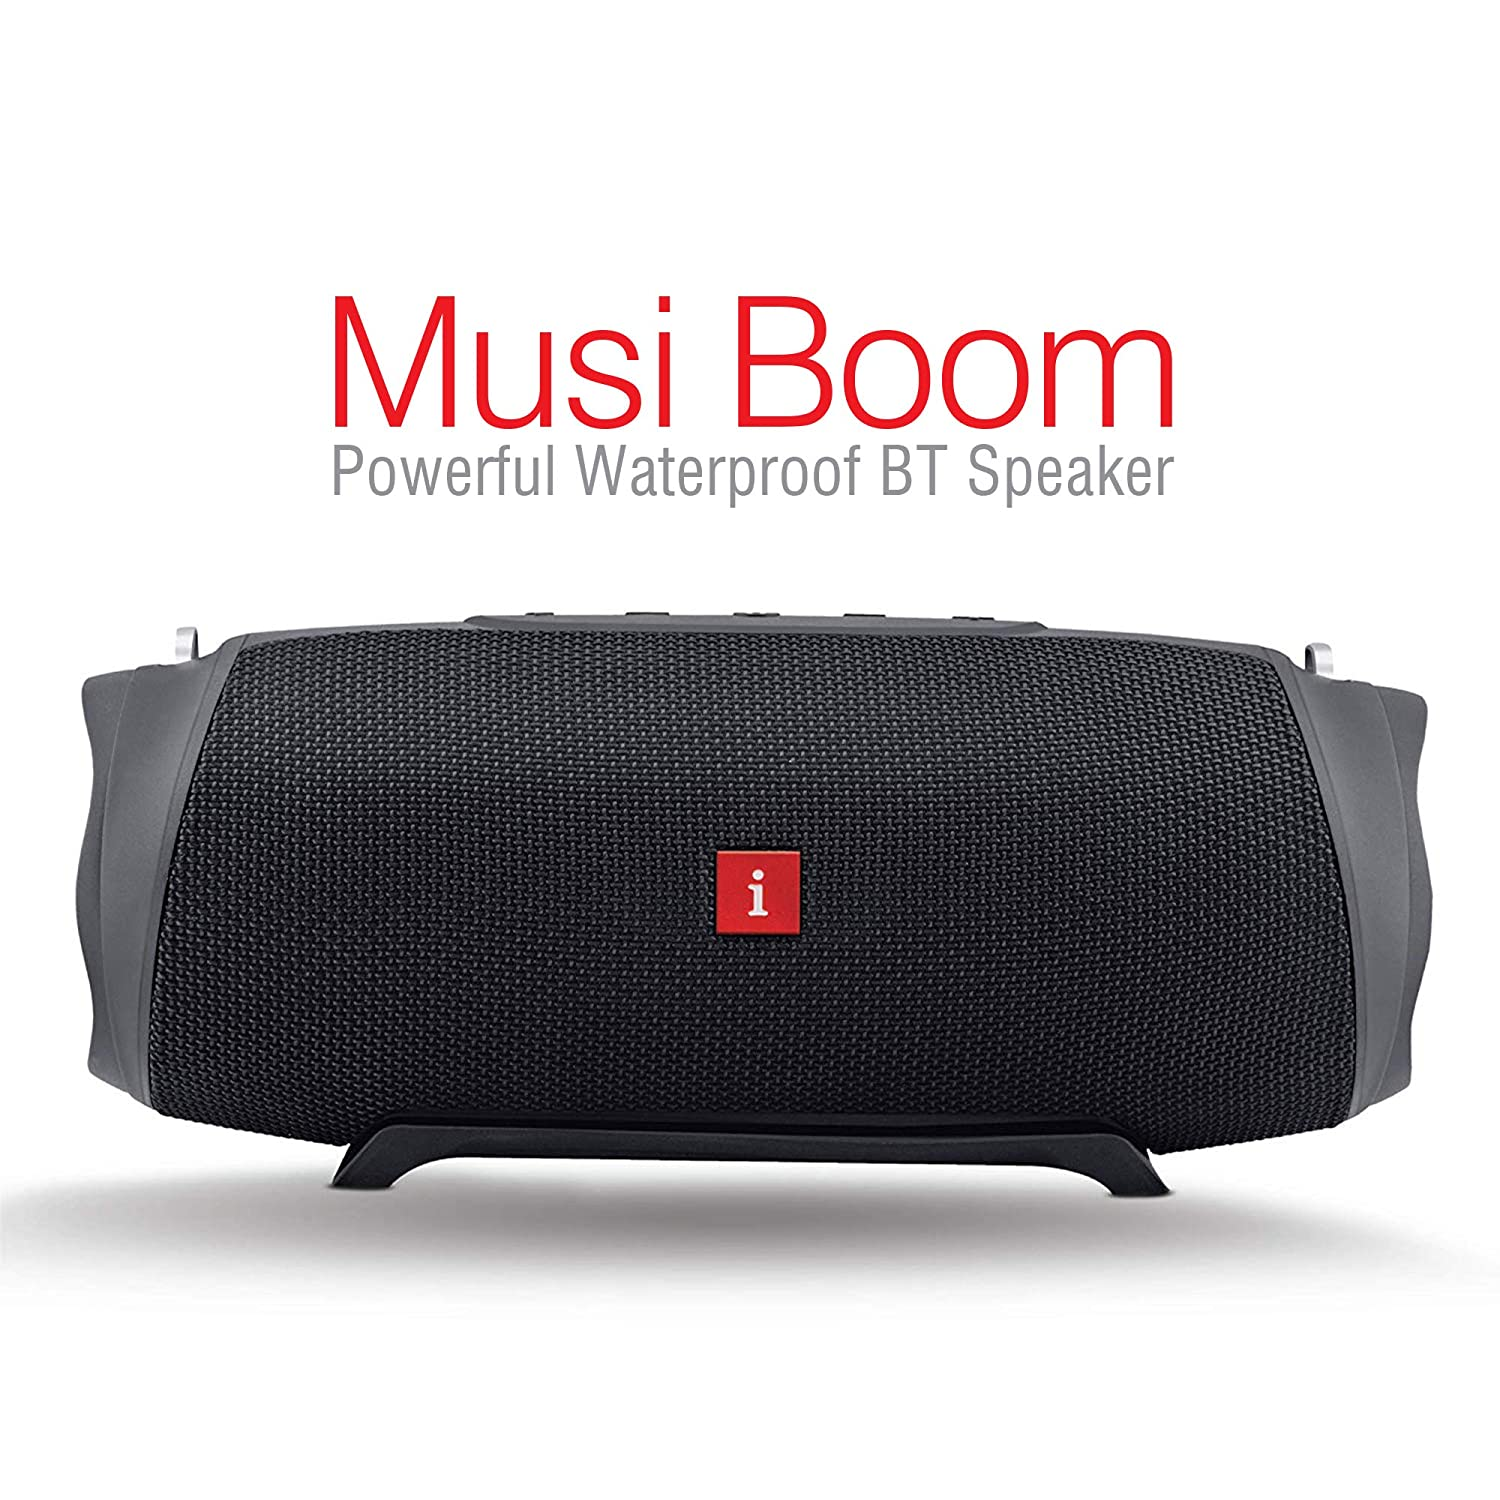 iBall Musi Boom IPX7 Waterproof with Built-in Powerbank Portable Bluetooth Party Speaker (Black)